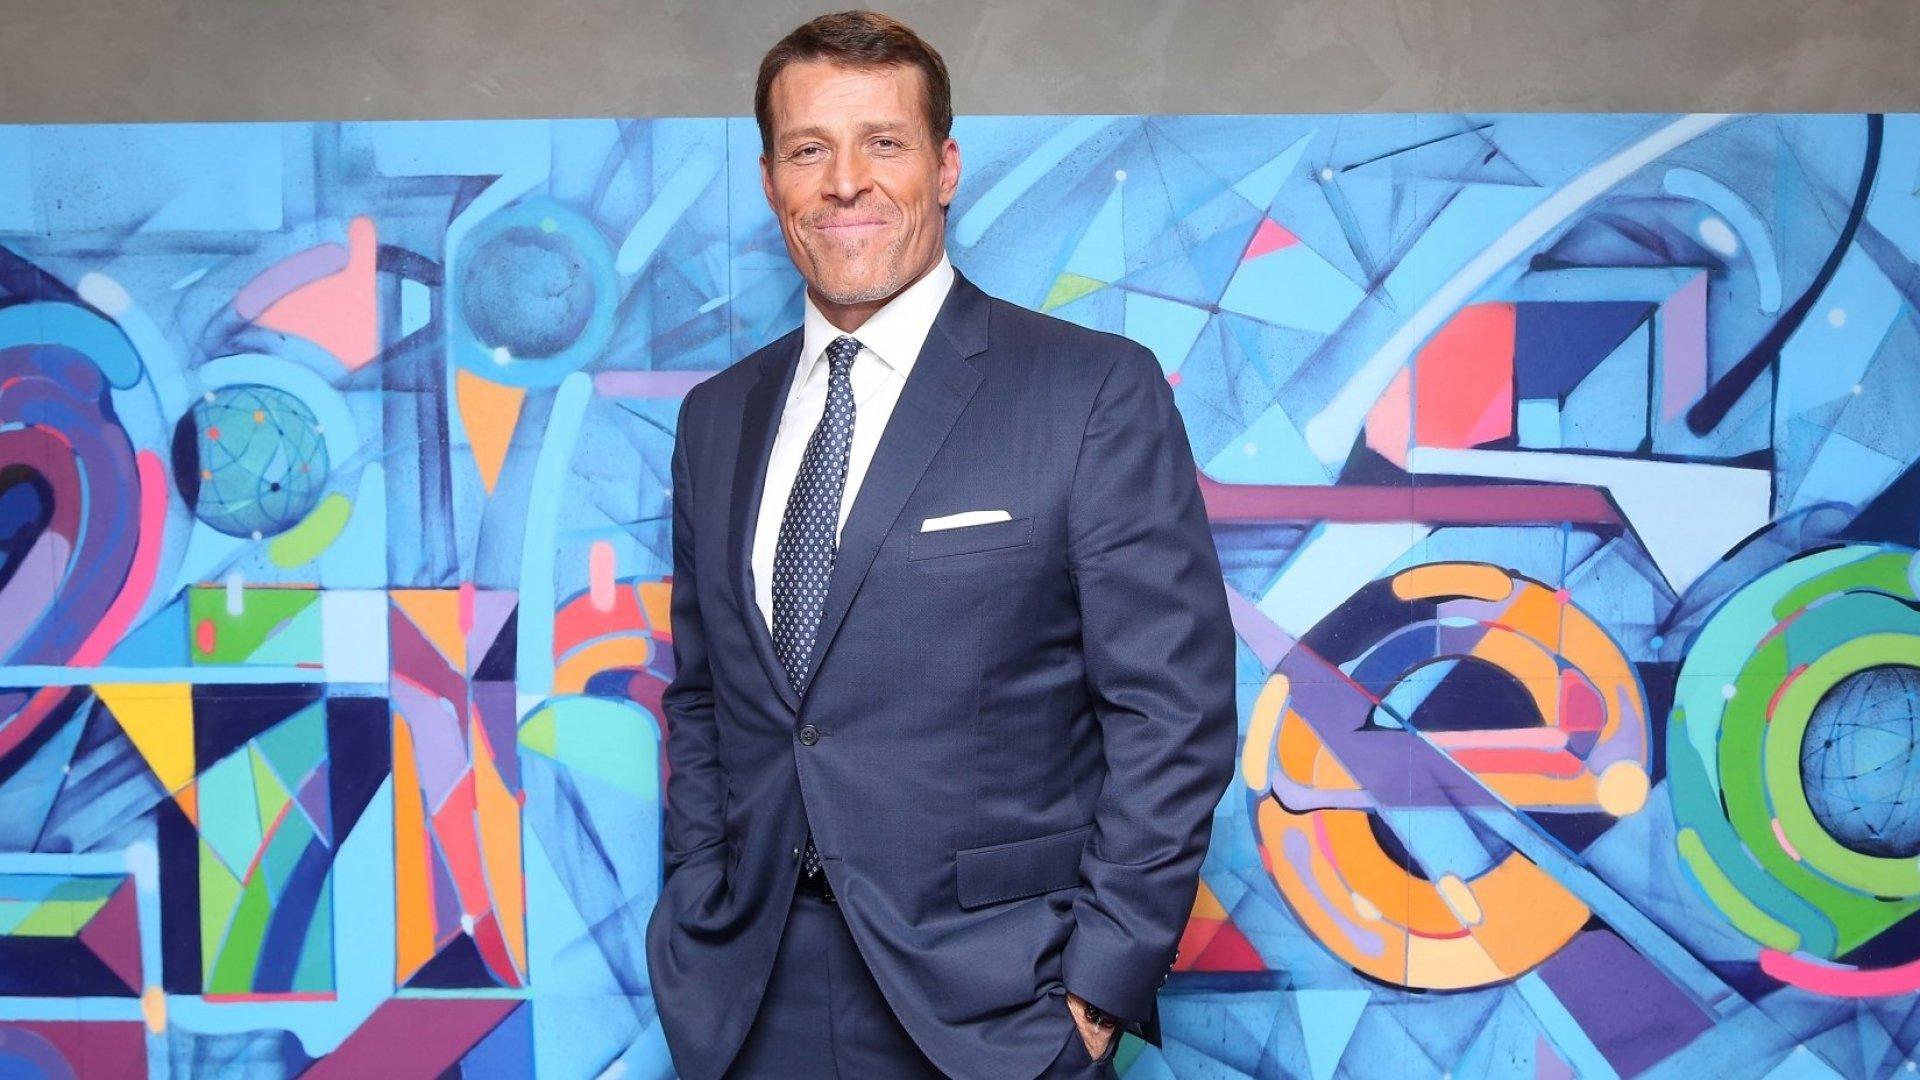 Tony Robbins' Mentor on How to Build Success Now